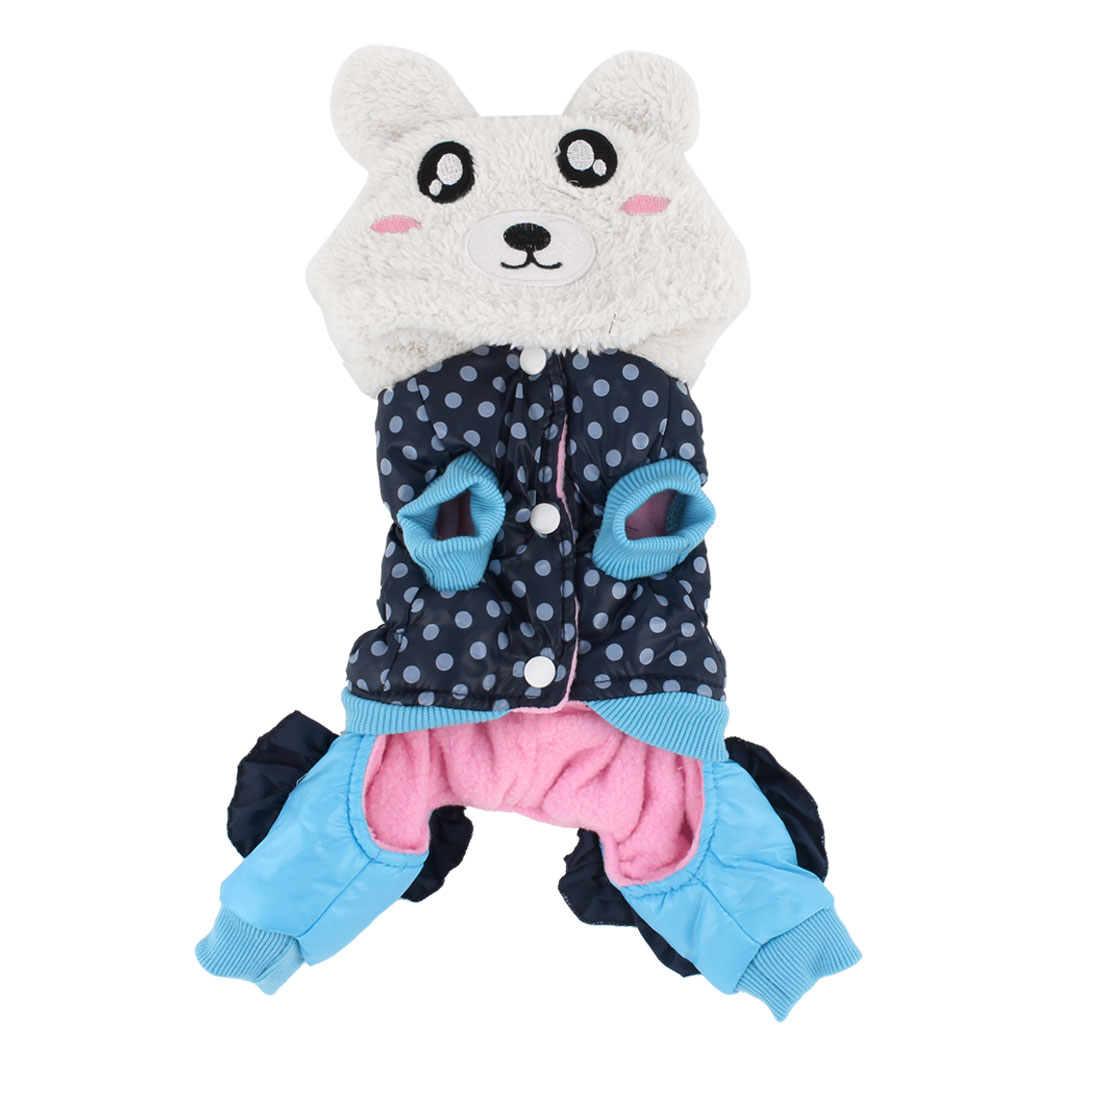 Pet Dog Doggy Winter Cotton Blends Panda Shaped Clothes Coat Dark Blue White